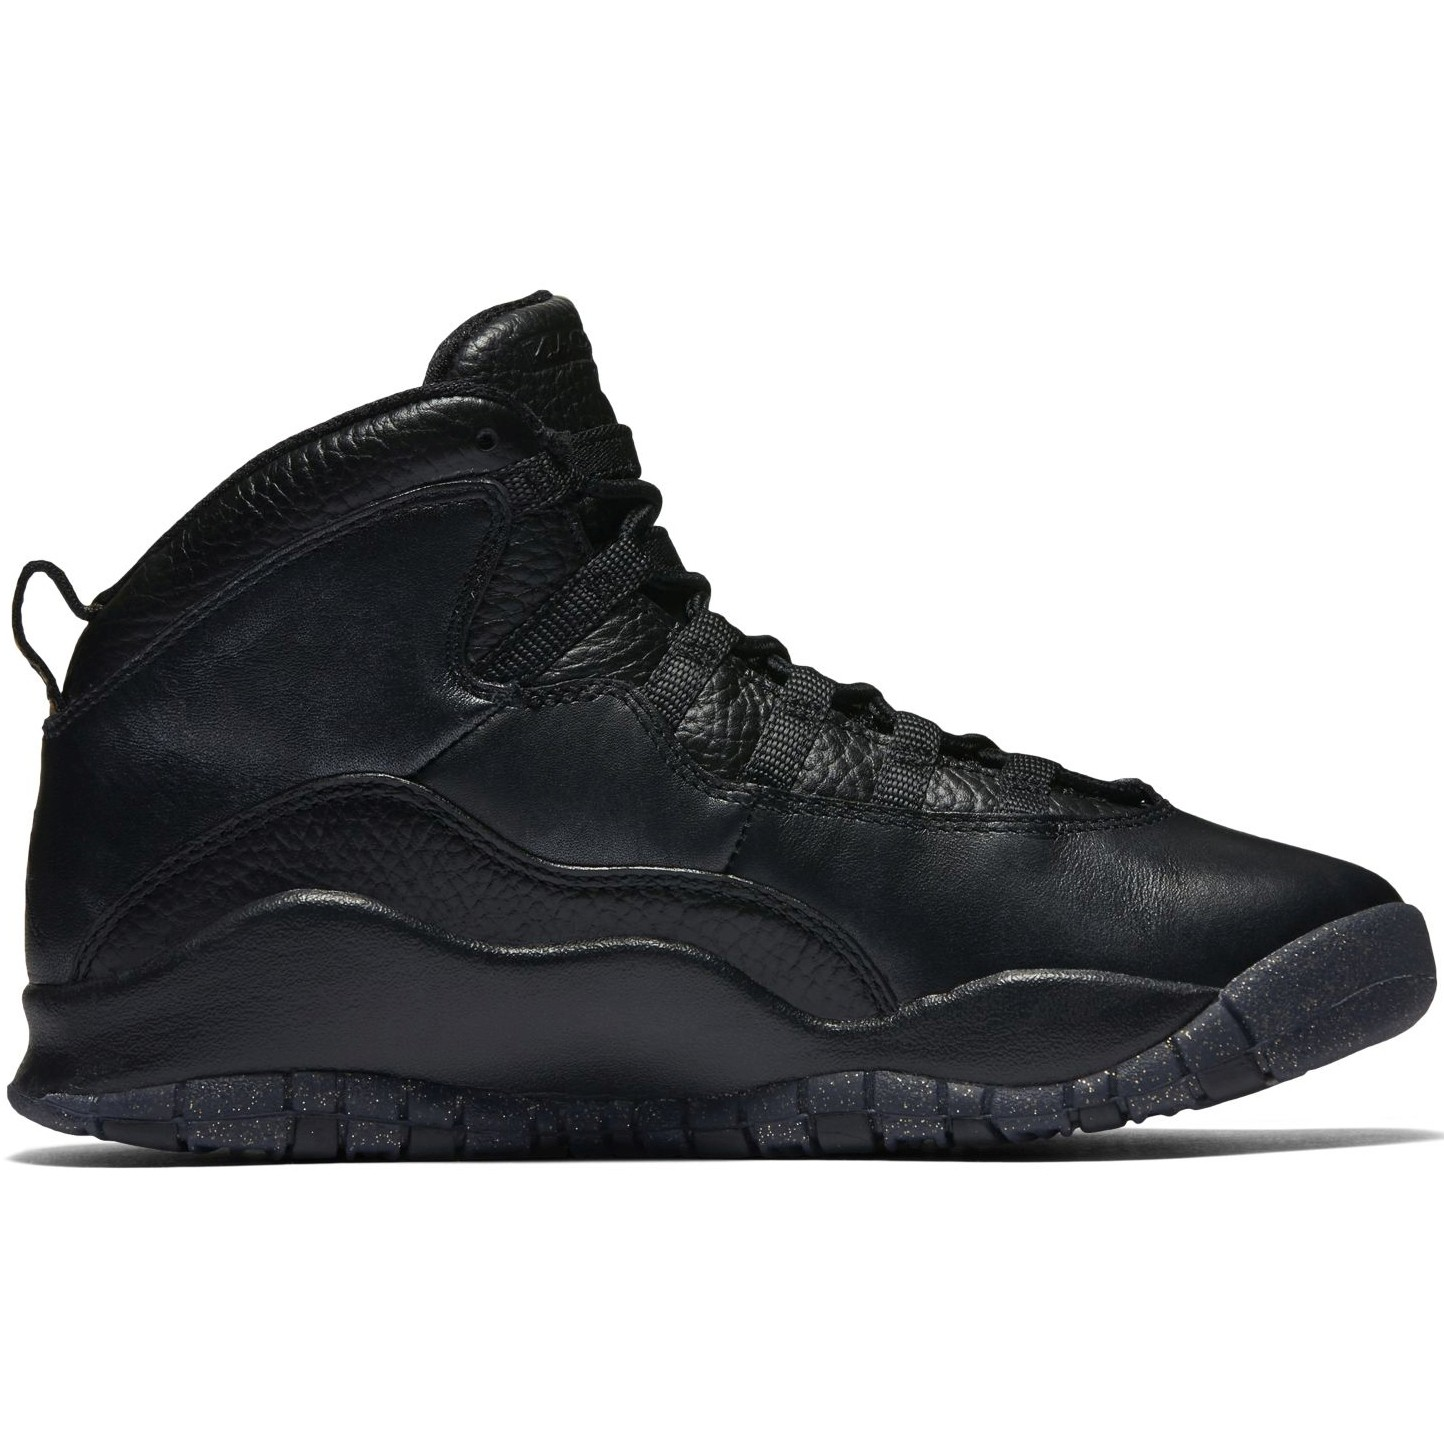 Air Jordan 10 Retro GS NYC City Pack - Laisvalaikio batai